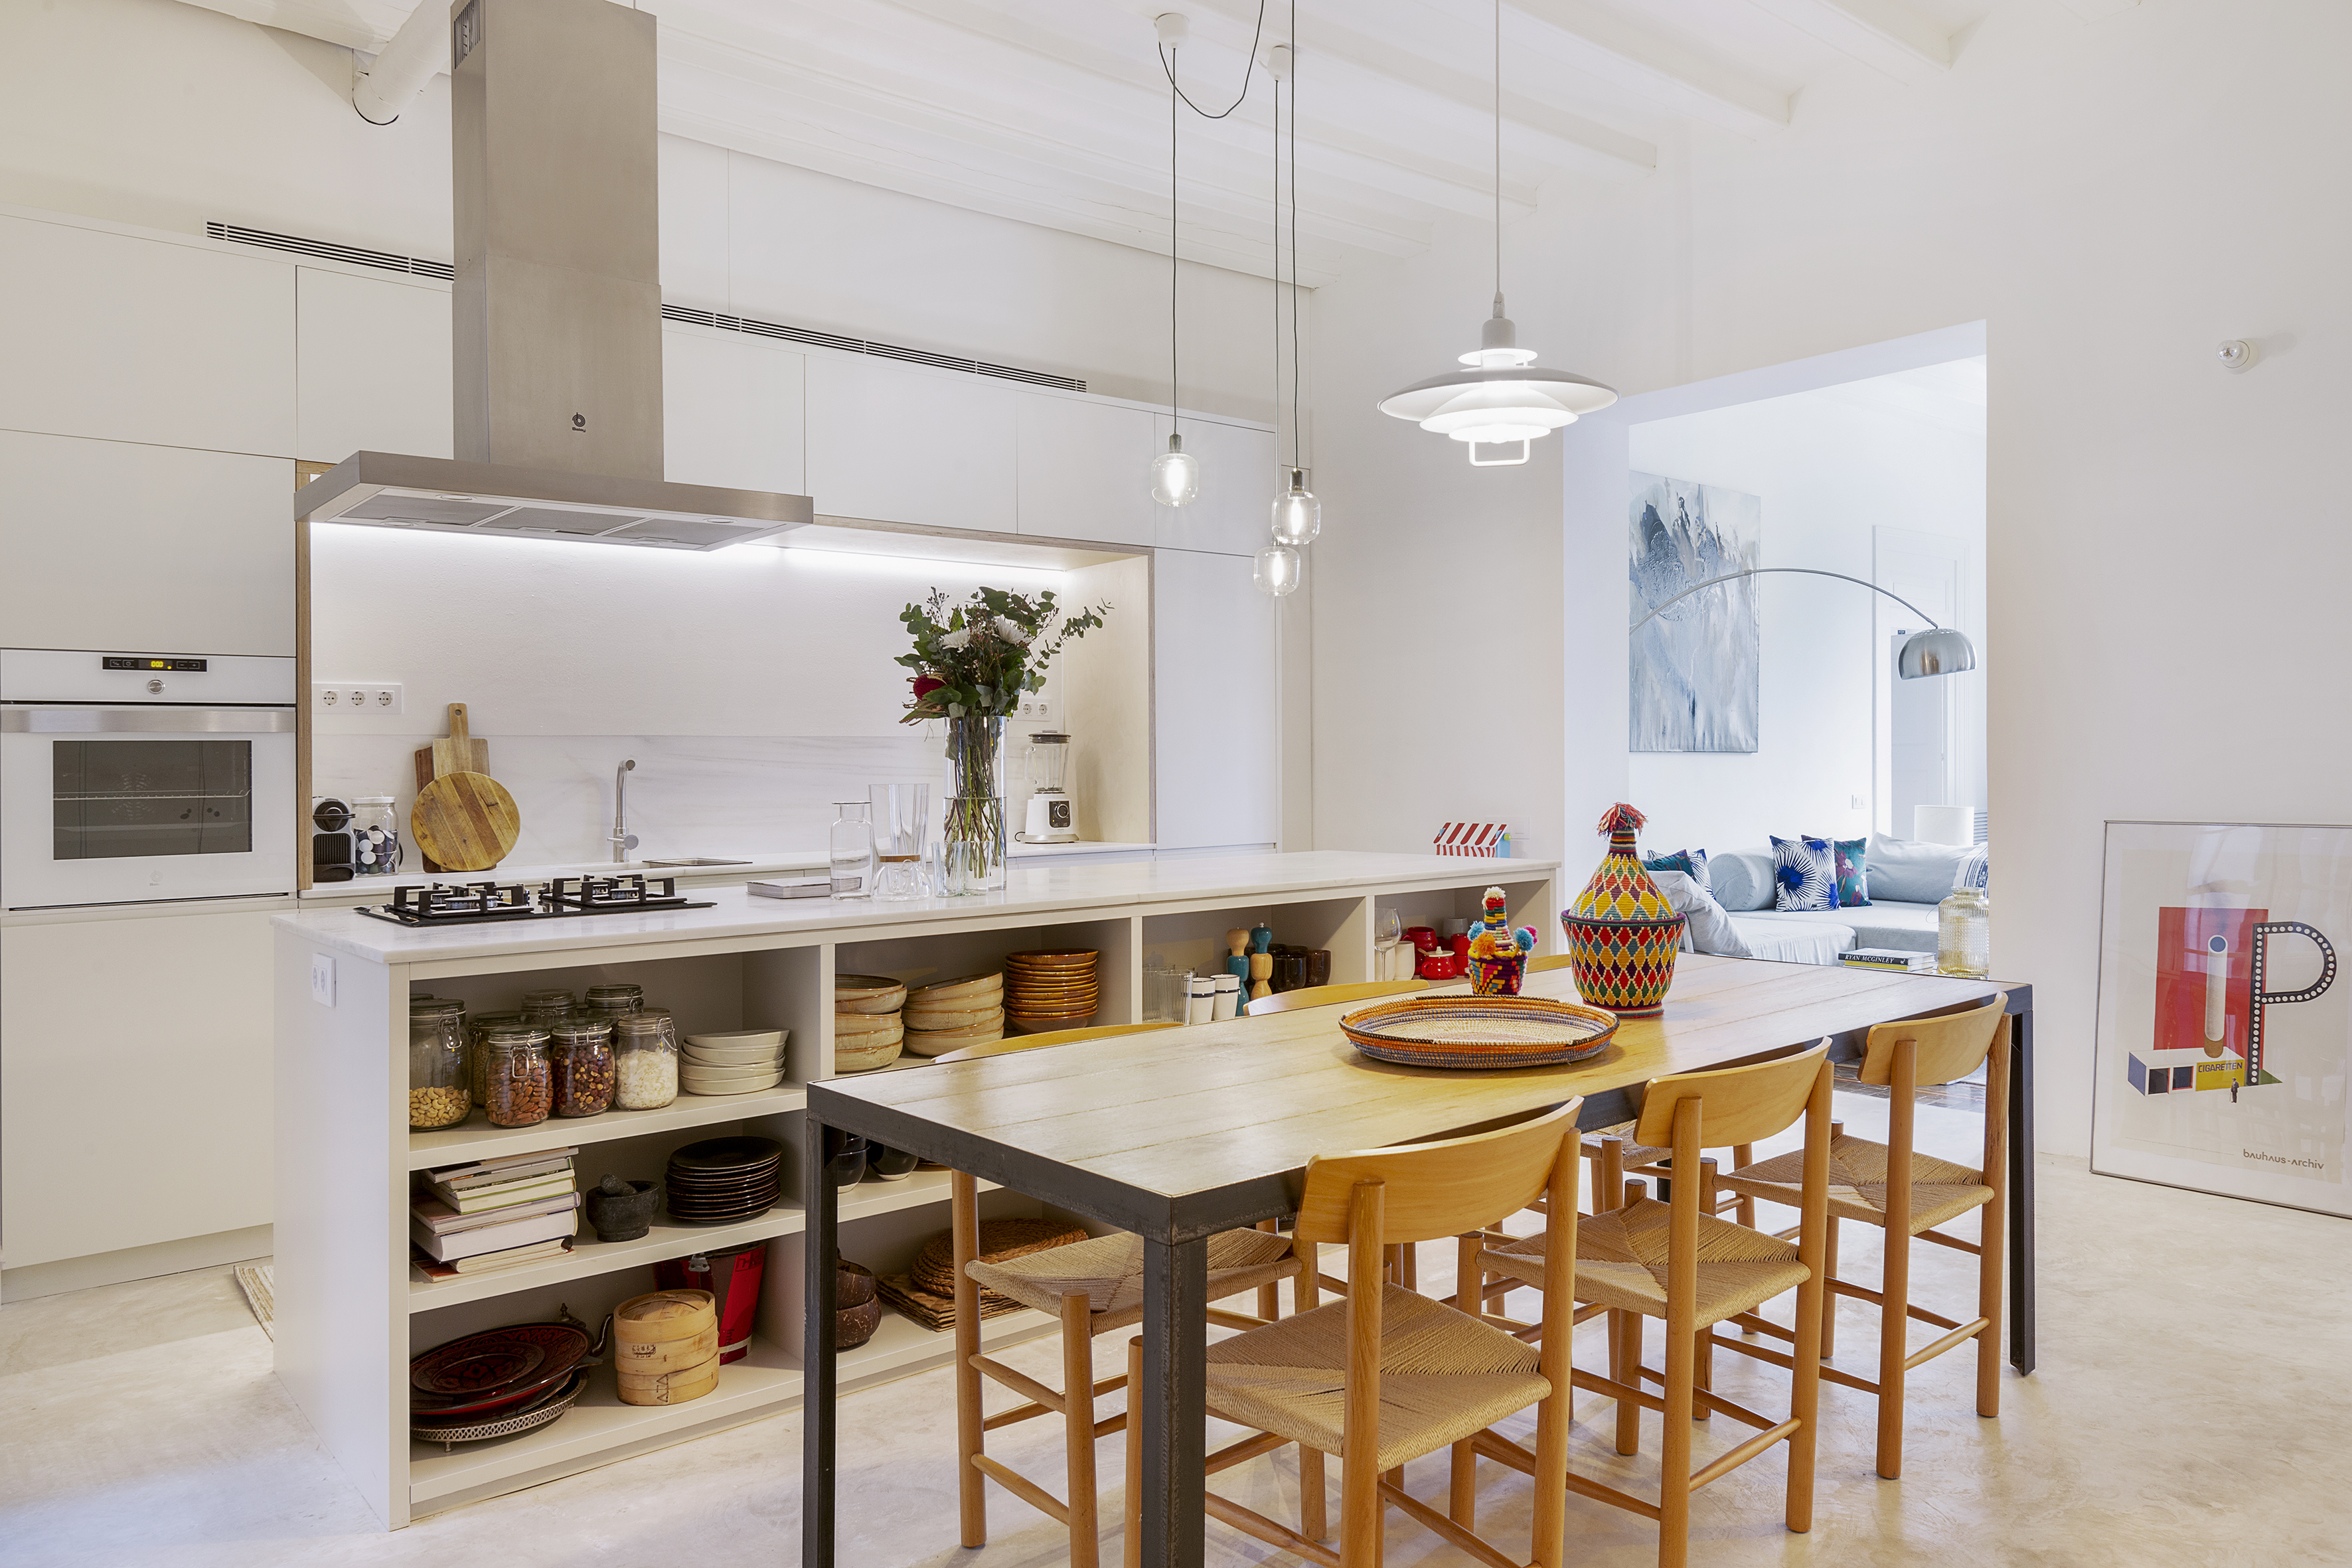 A Barcelona Home Blends Natural Materials and Minimalism Beautifully